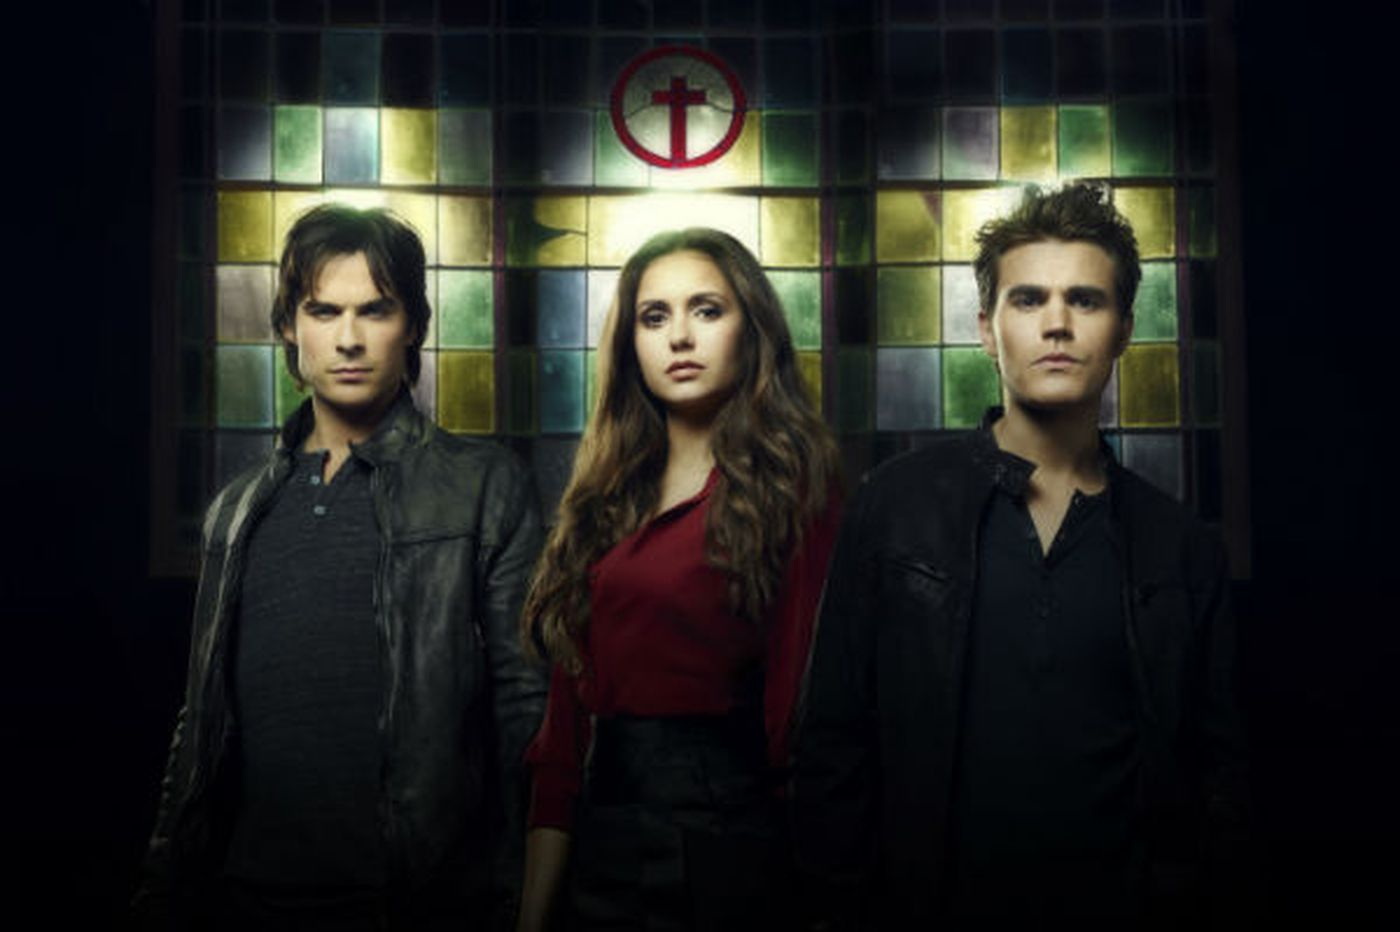 New CW shows feature vampires, werewolves, and 16th-century royalty